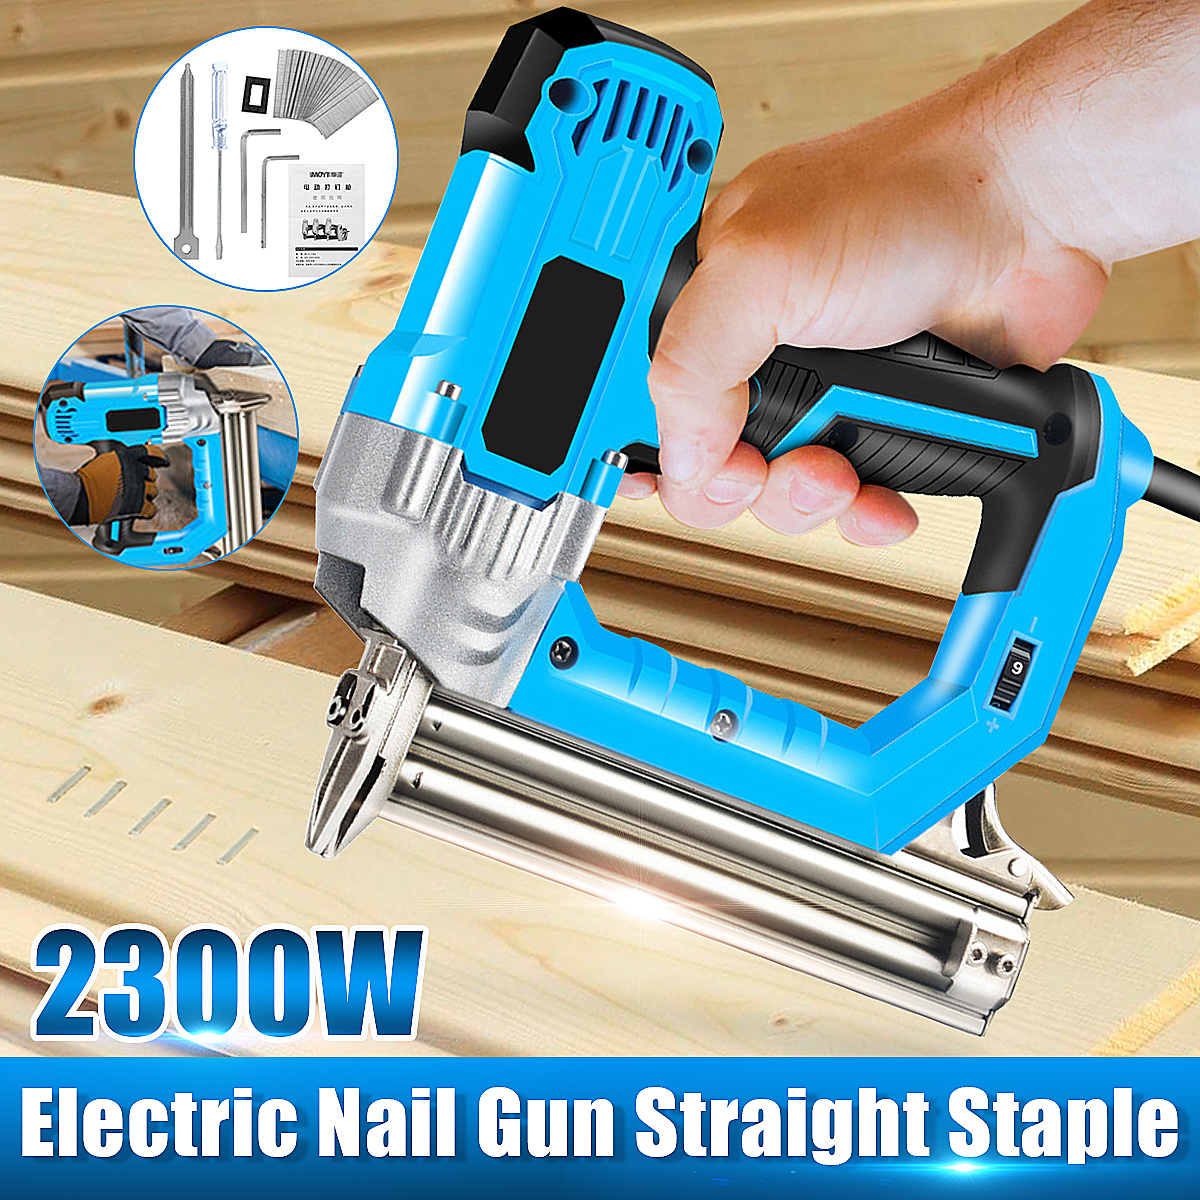 2300W Electric Staple Gun framing Straight Nail Heavy Duty Woodworking Supplies